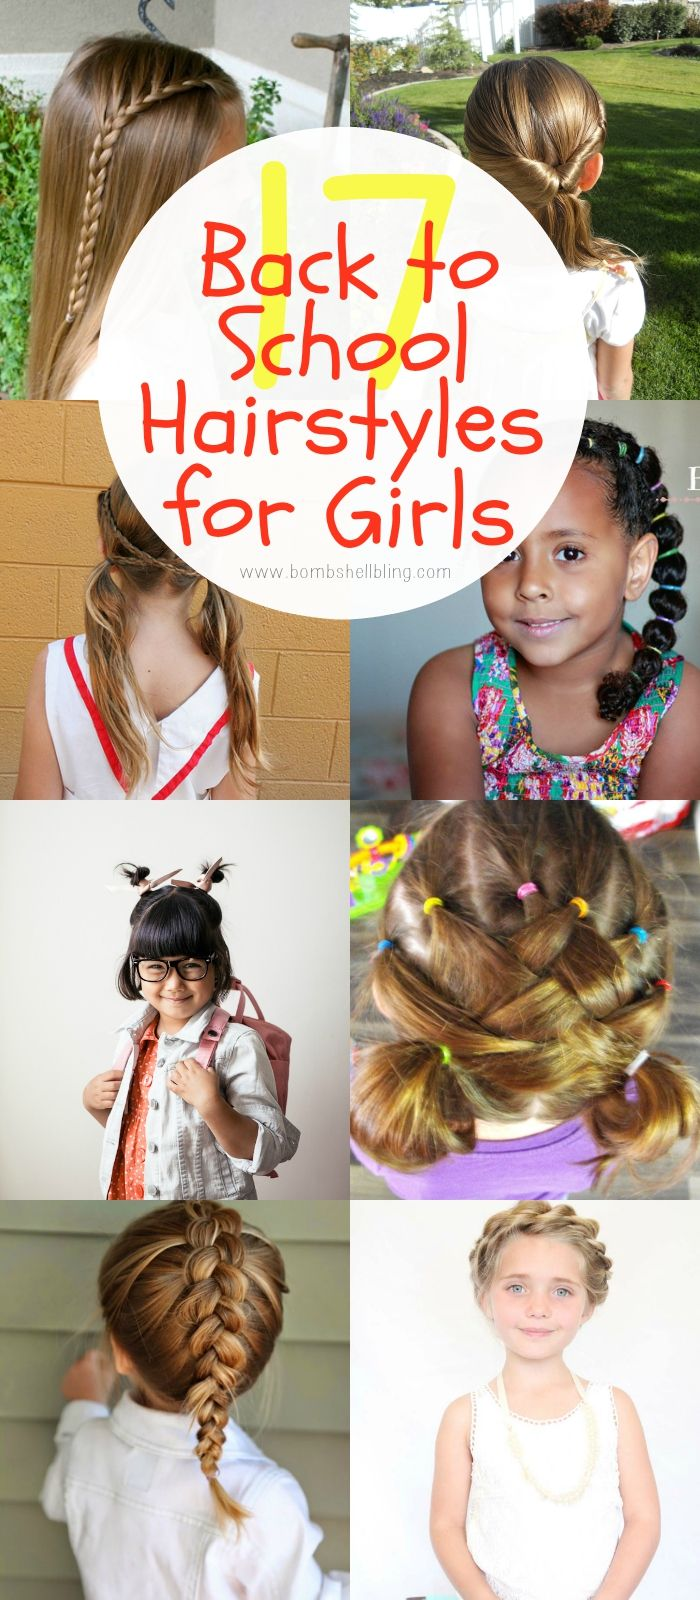 17 Fun Back to School Hairstyles for Girls